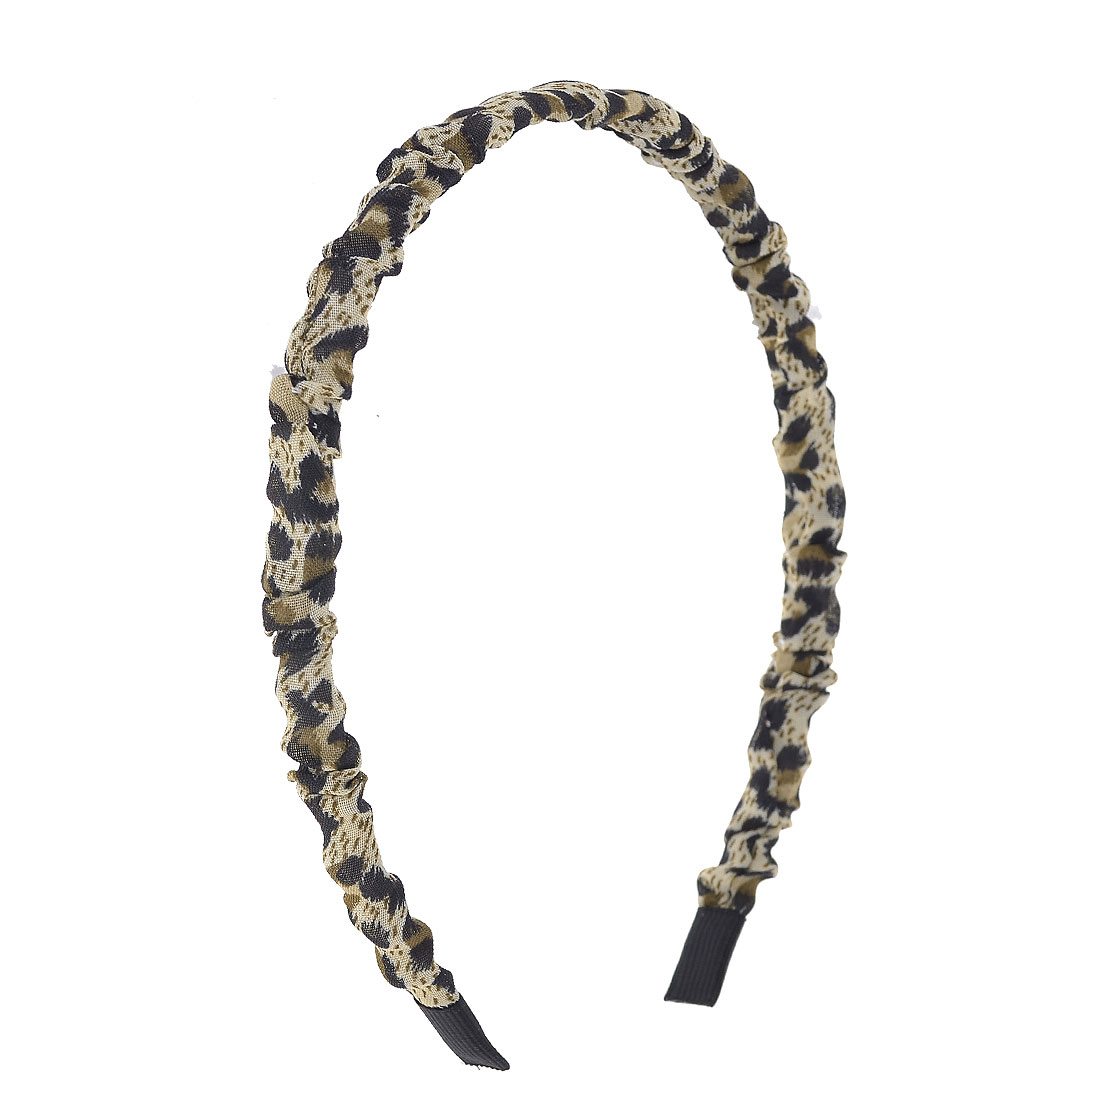 Leopard Prints Nylon Cover Headband Hair Hoop Beige Black for Woman